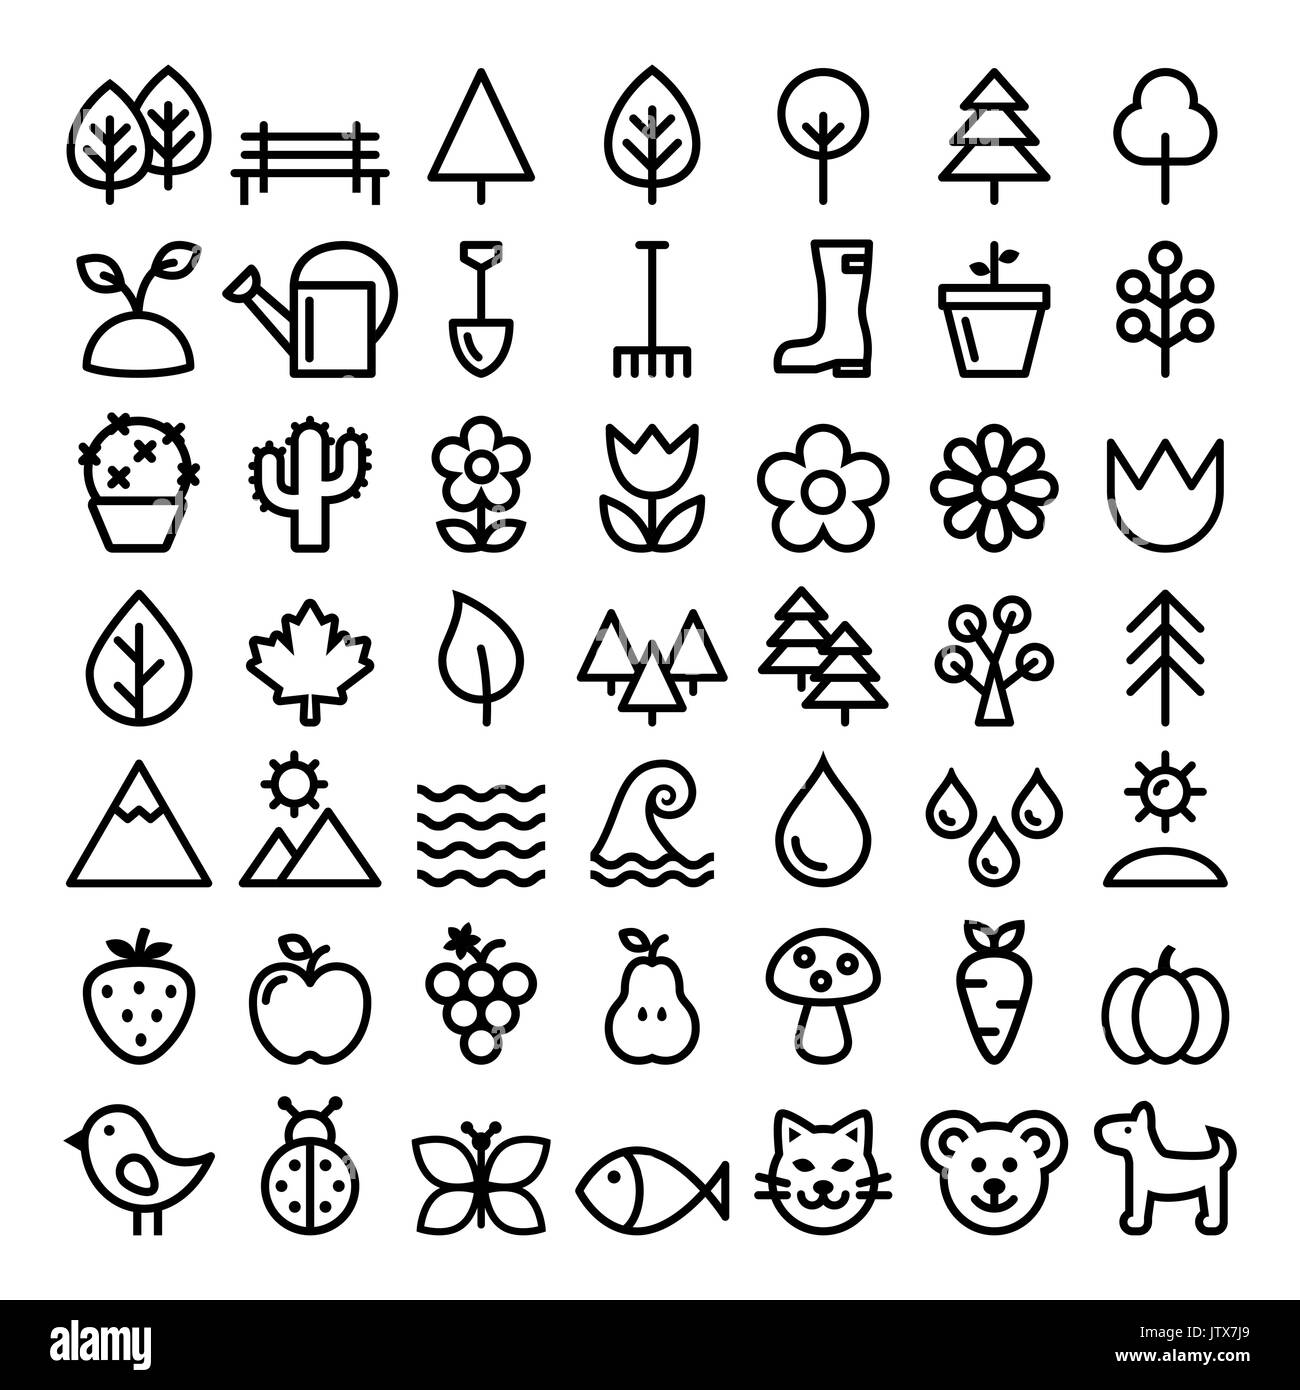 Nature vector line icons, minimalist park, animals, ecology, organic food design - big pack - Stock Vector